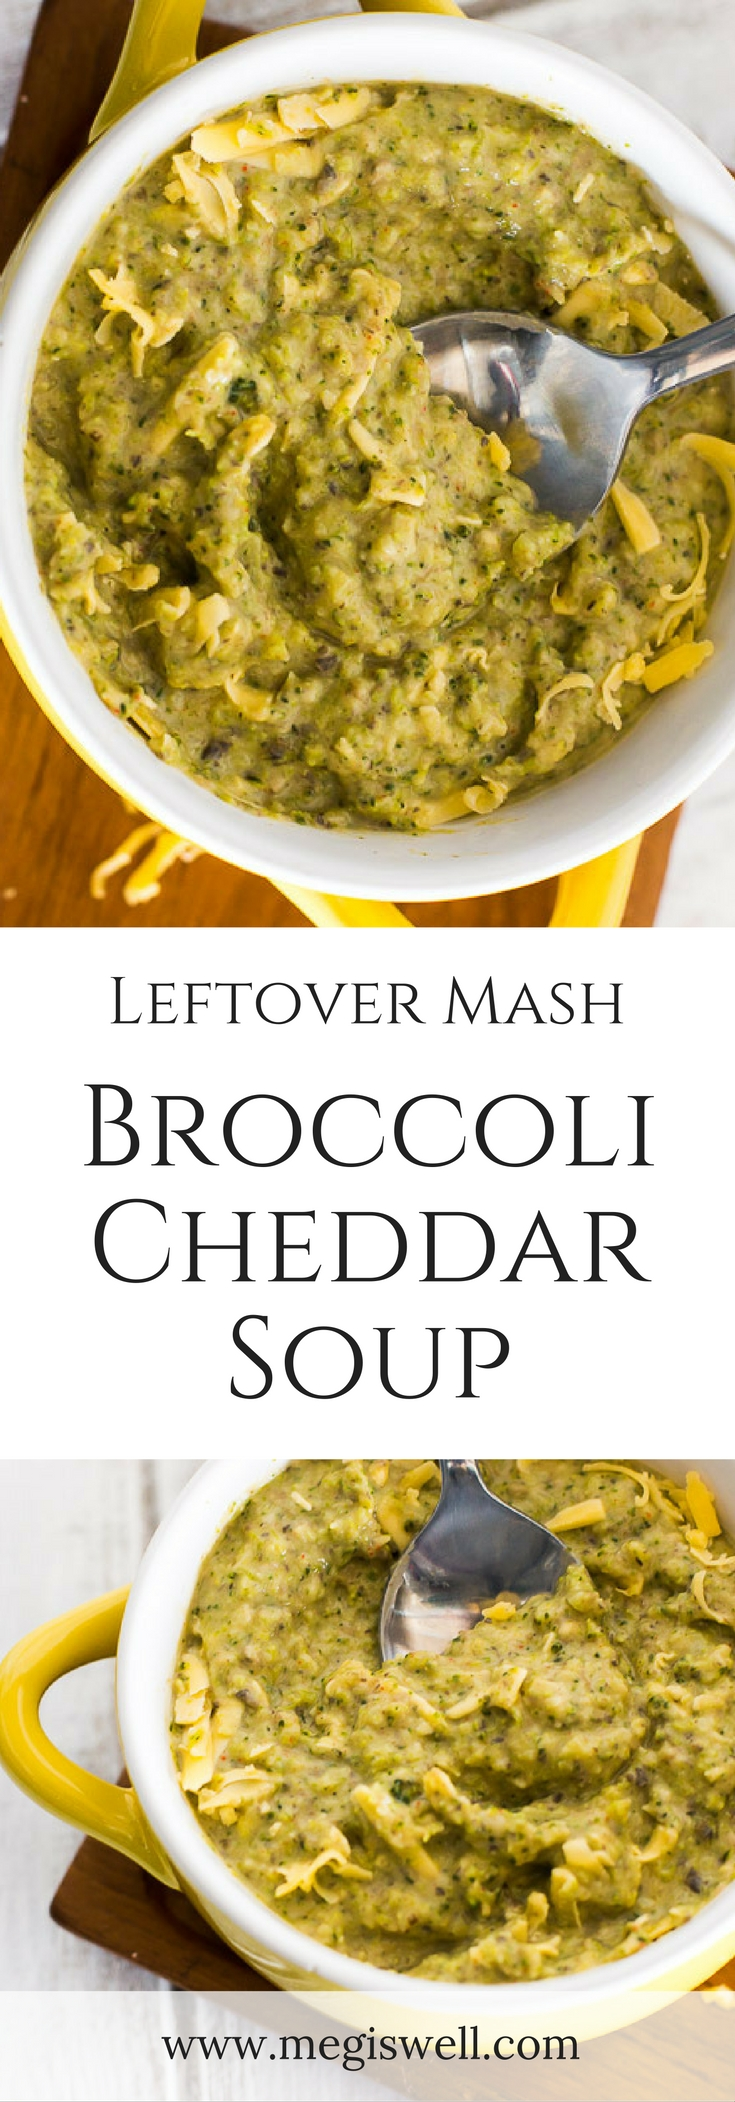 Use your leftover cauliflower mash or mashed potatoes to make this Leftover Mash Broccoli Cheddar Soup. Cayenne pepper packs the heat and warms you up from the inside out, making this perfect for cold and lazy days. | www.megiswell.com